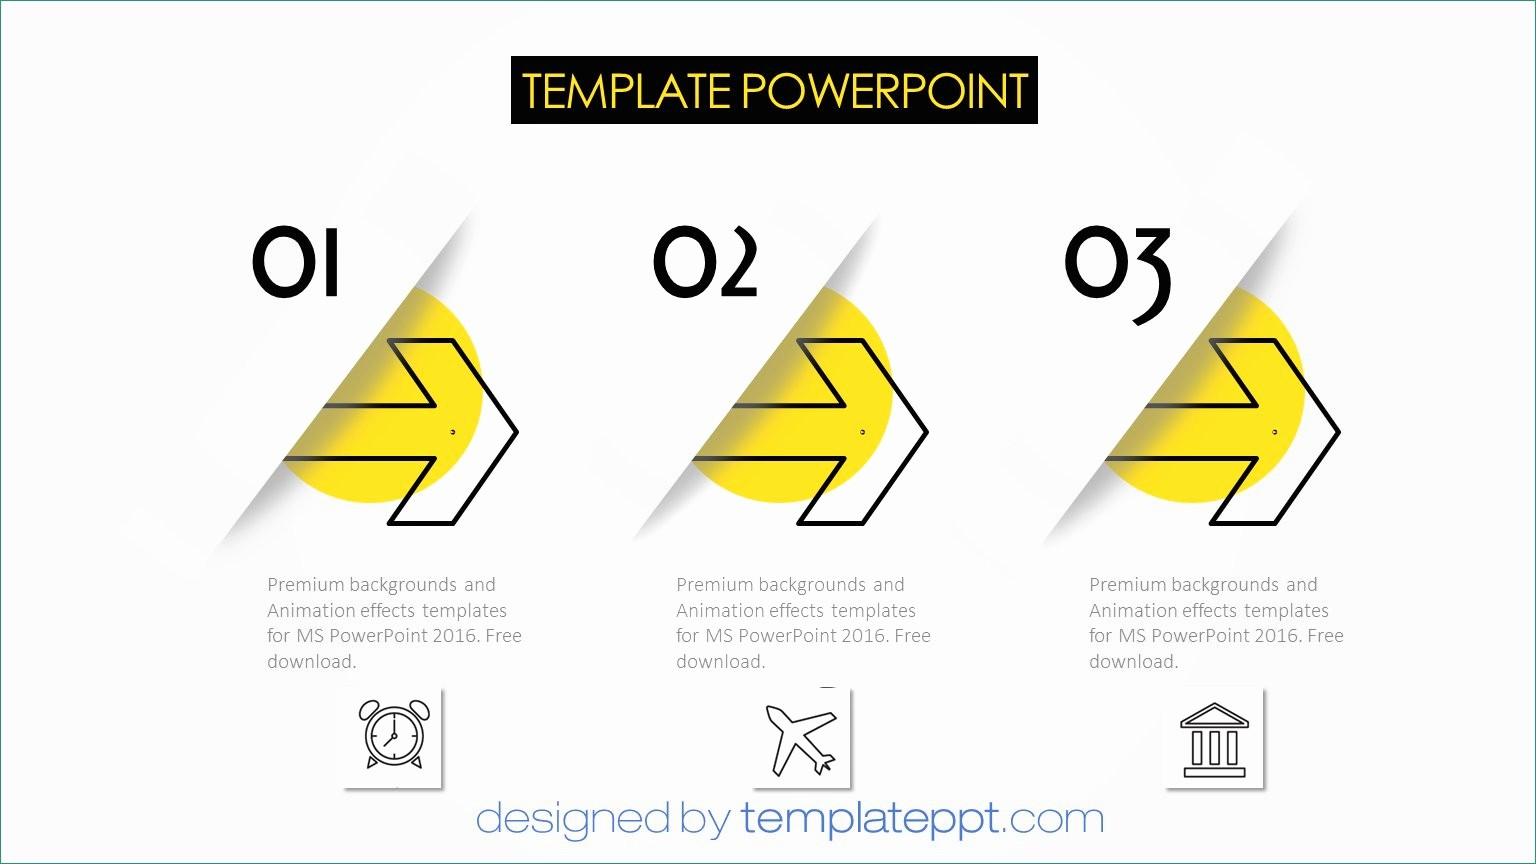 Powerpoint Slide Templates Free Download Unique Presenter Media Yourbackupemployee fortable Animated